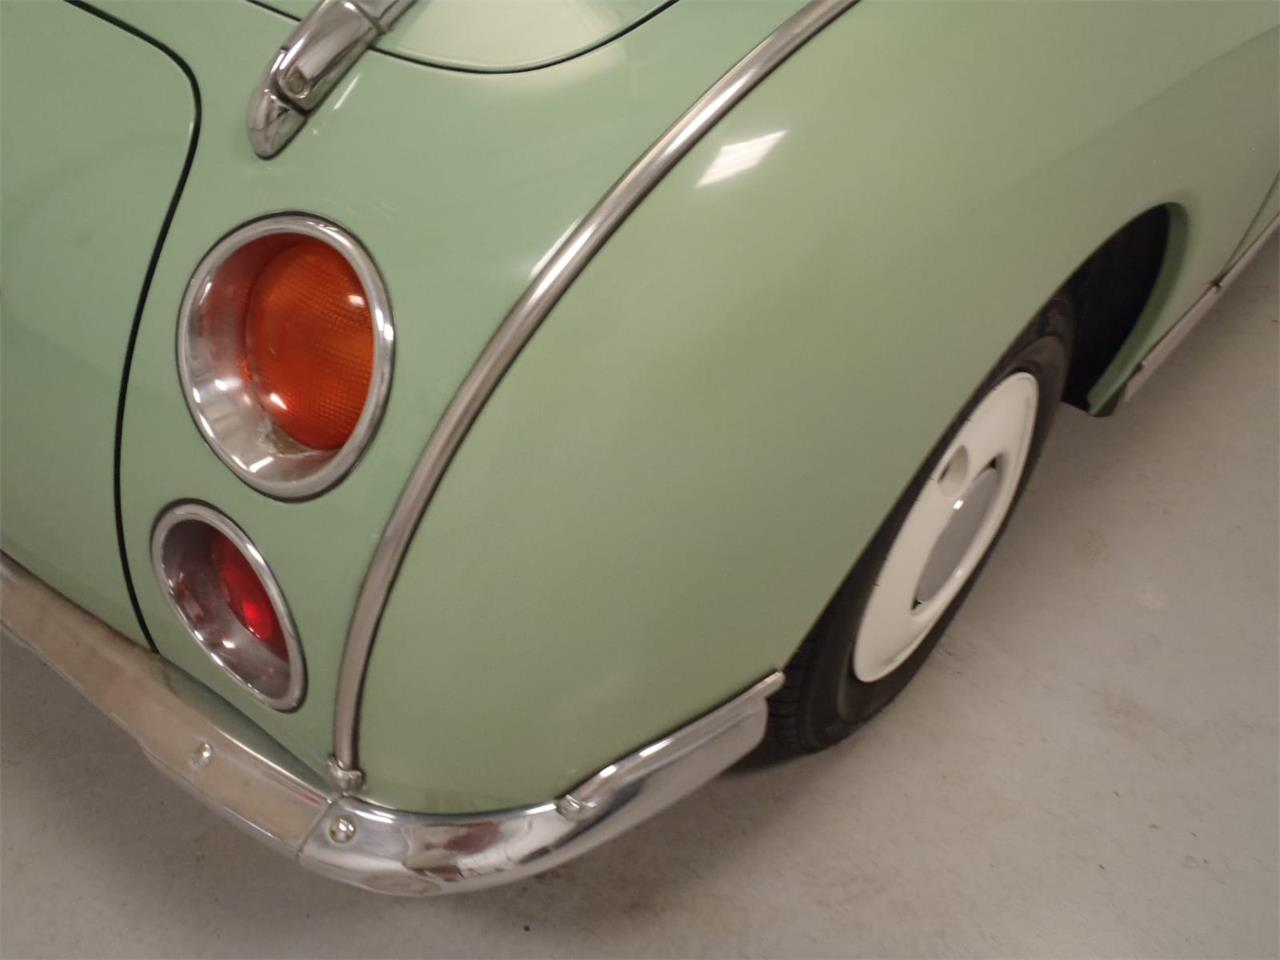 Large Picture of '91 Nissan Figaro - $5,932.00 - JL8D